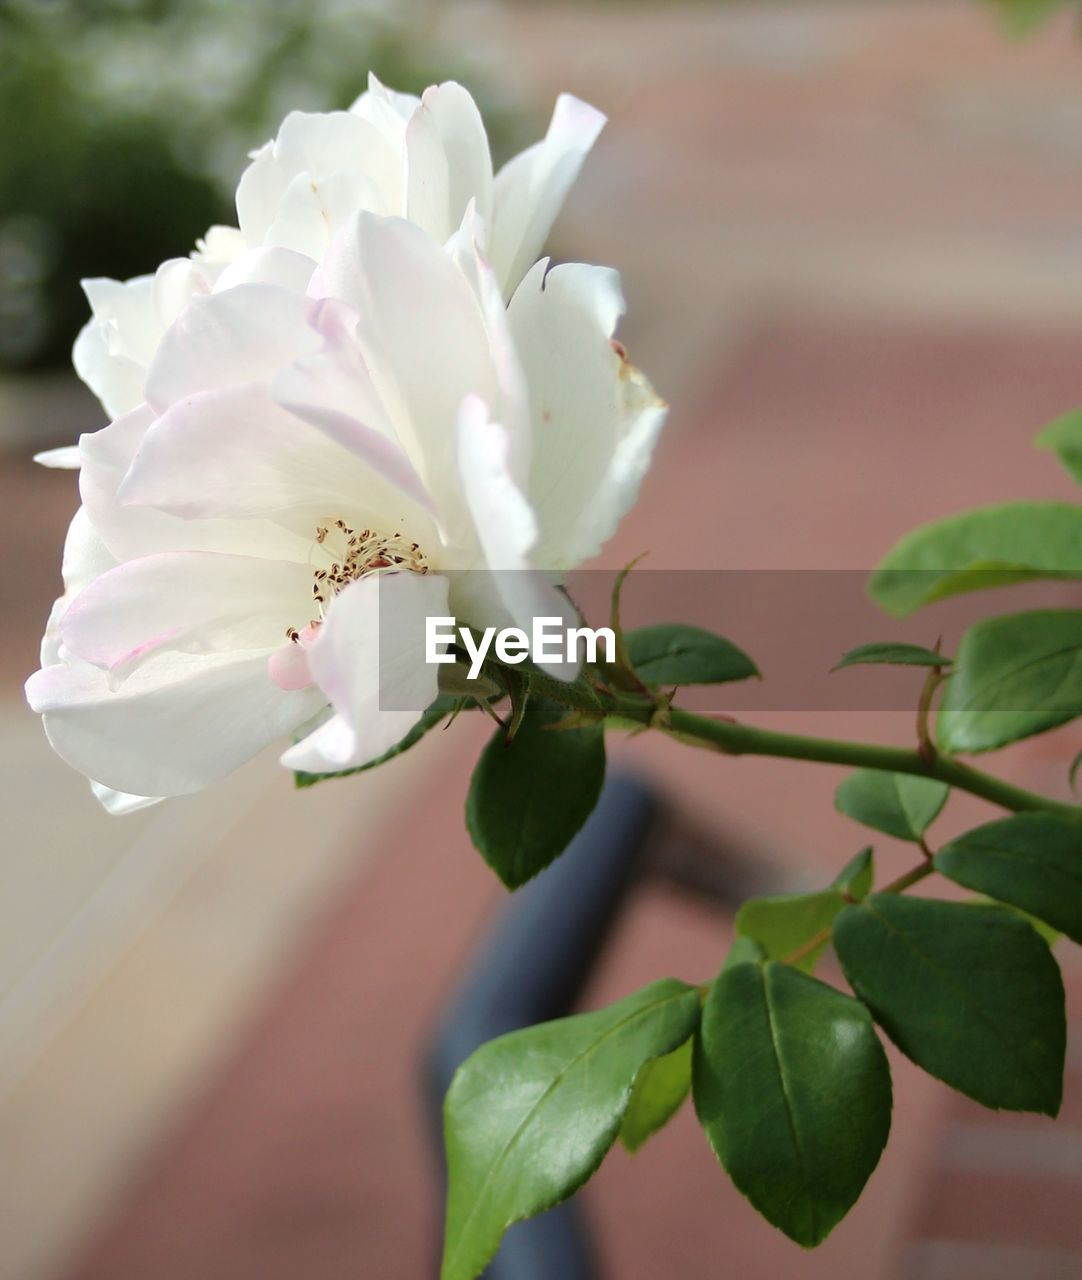 flower, growth, nature, beauty in nature, petal, fragility, no people, freshness, plant, close-up, outdoors, day, tree, flower head